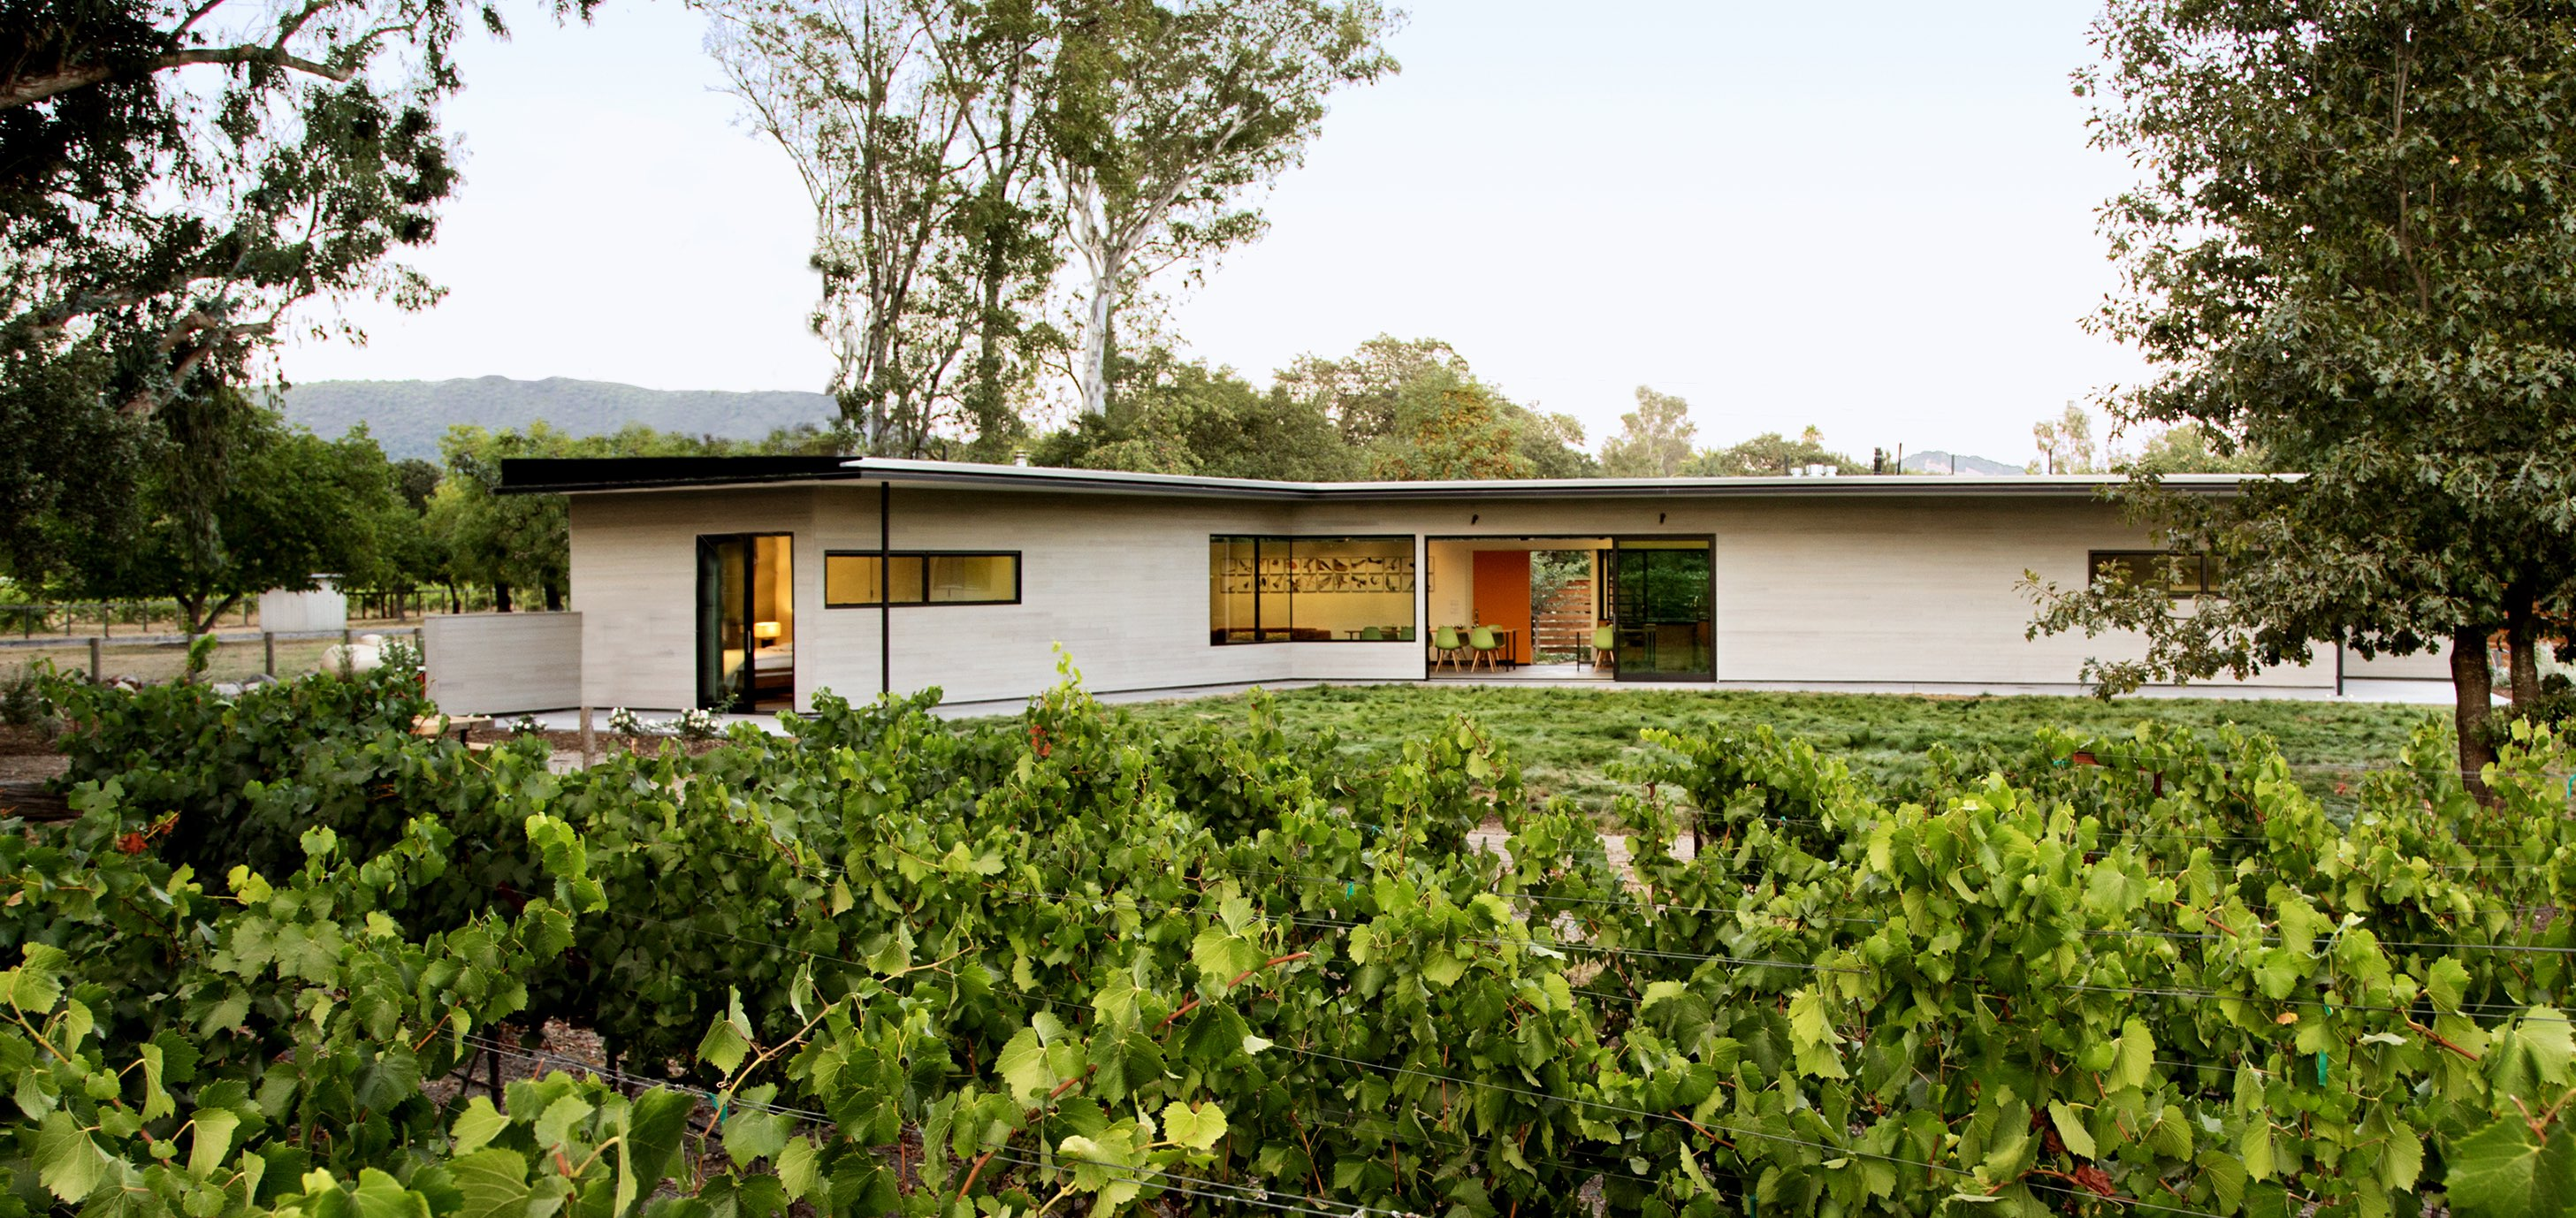 custom built sonoma county homes for the price of a prefab real schwartz hydeaway house 1